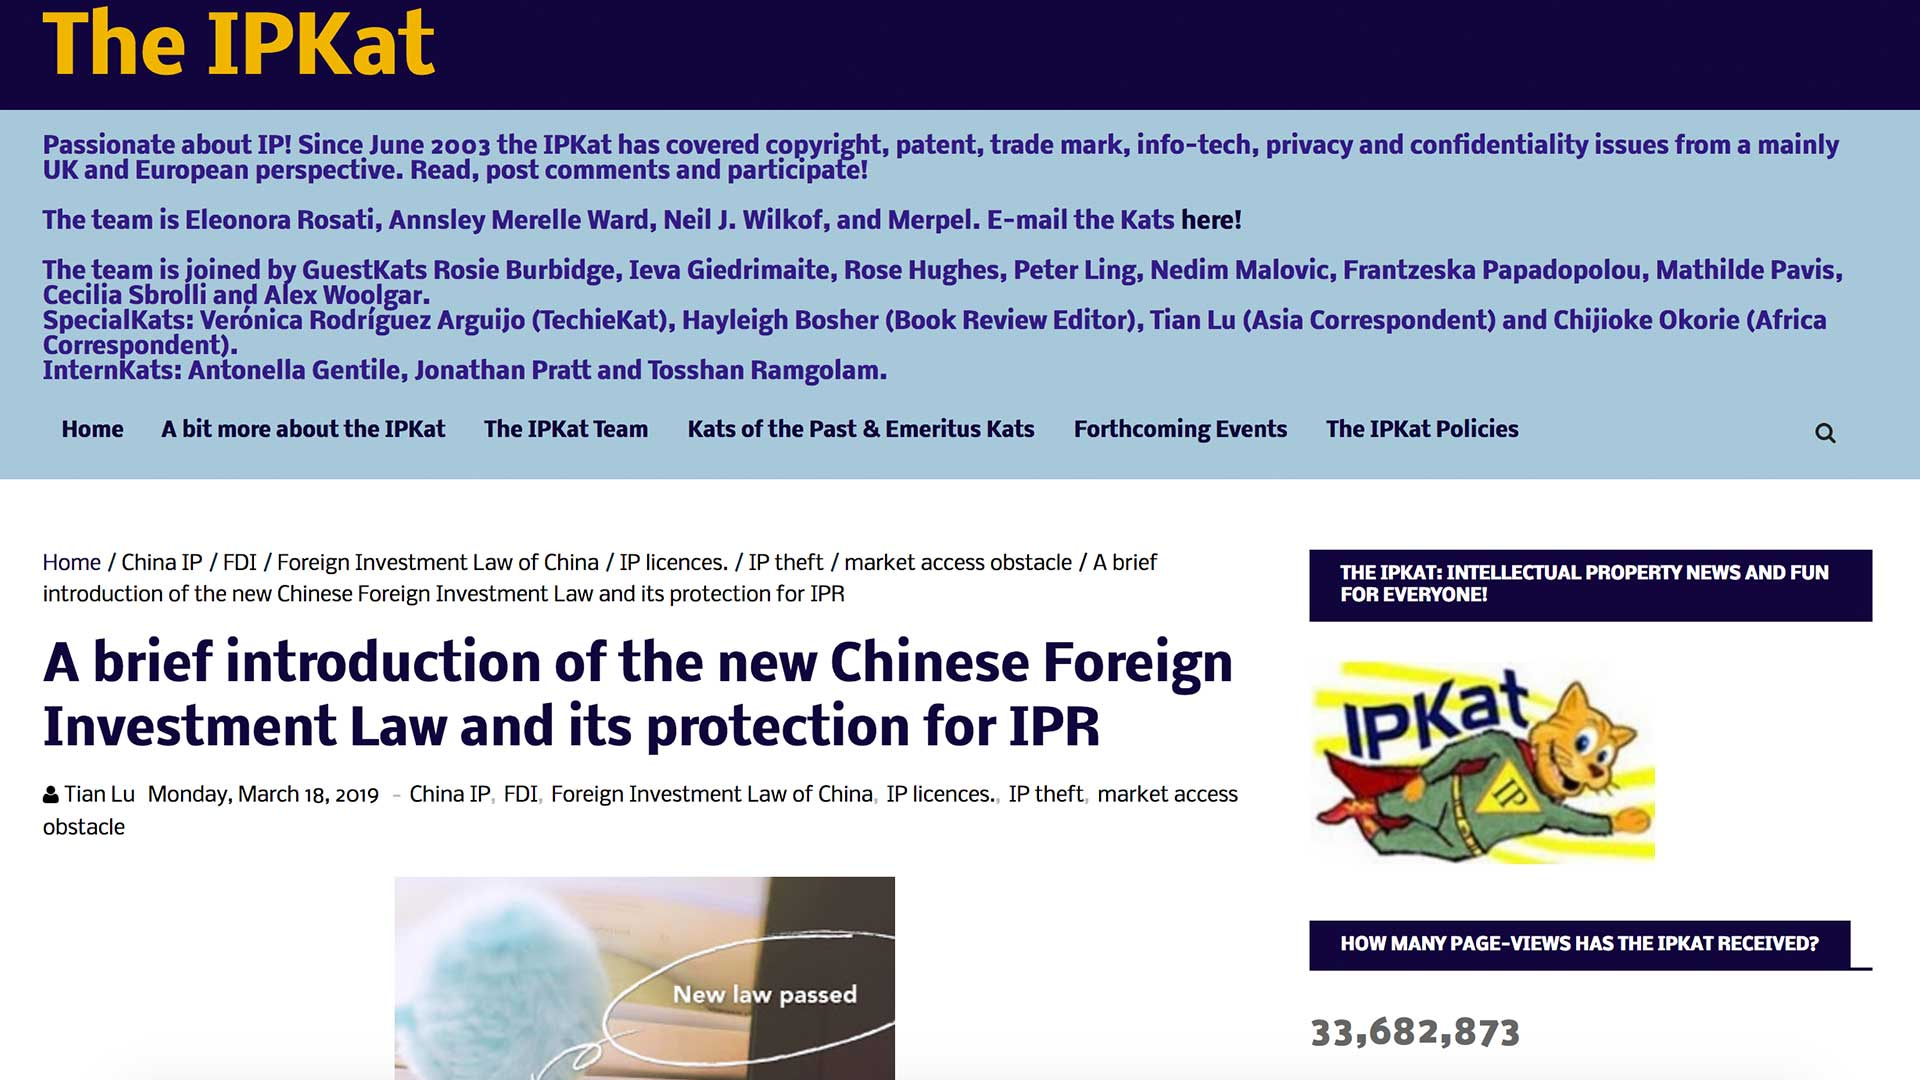 Fairness Rocks News A brief introduction of the new Chinese Foreign Investment Law and its protection for IPR